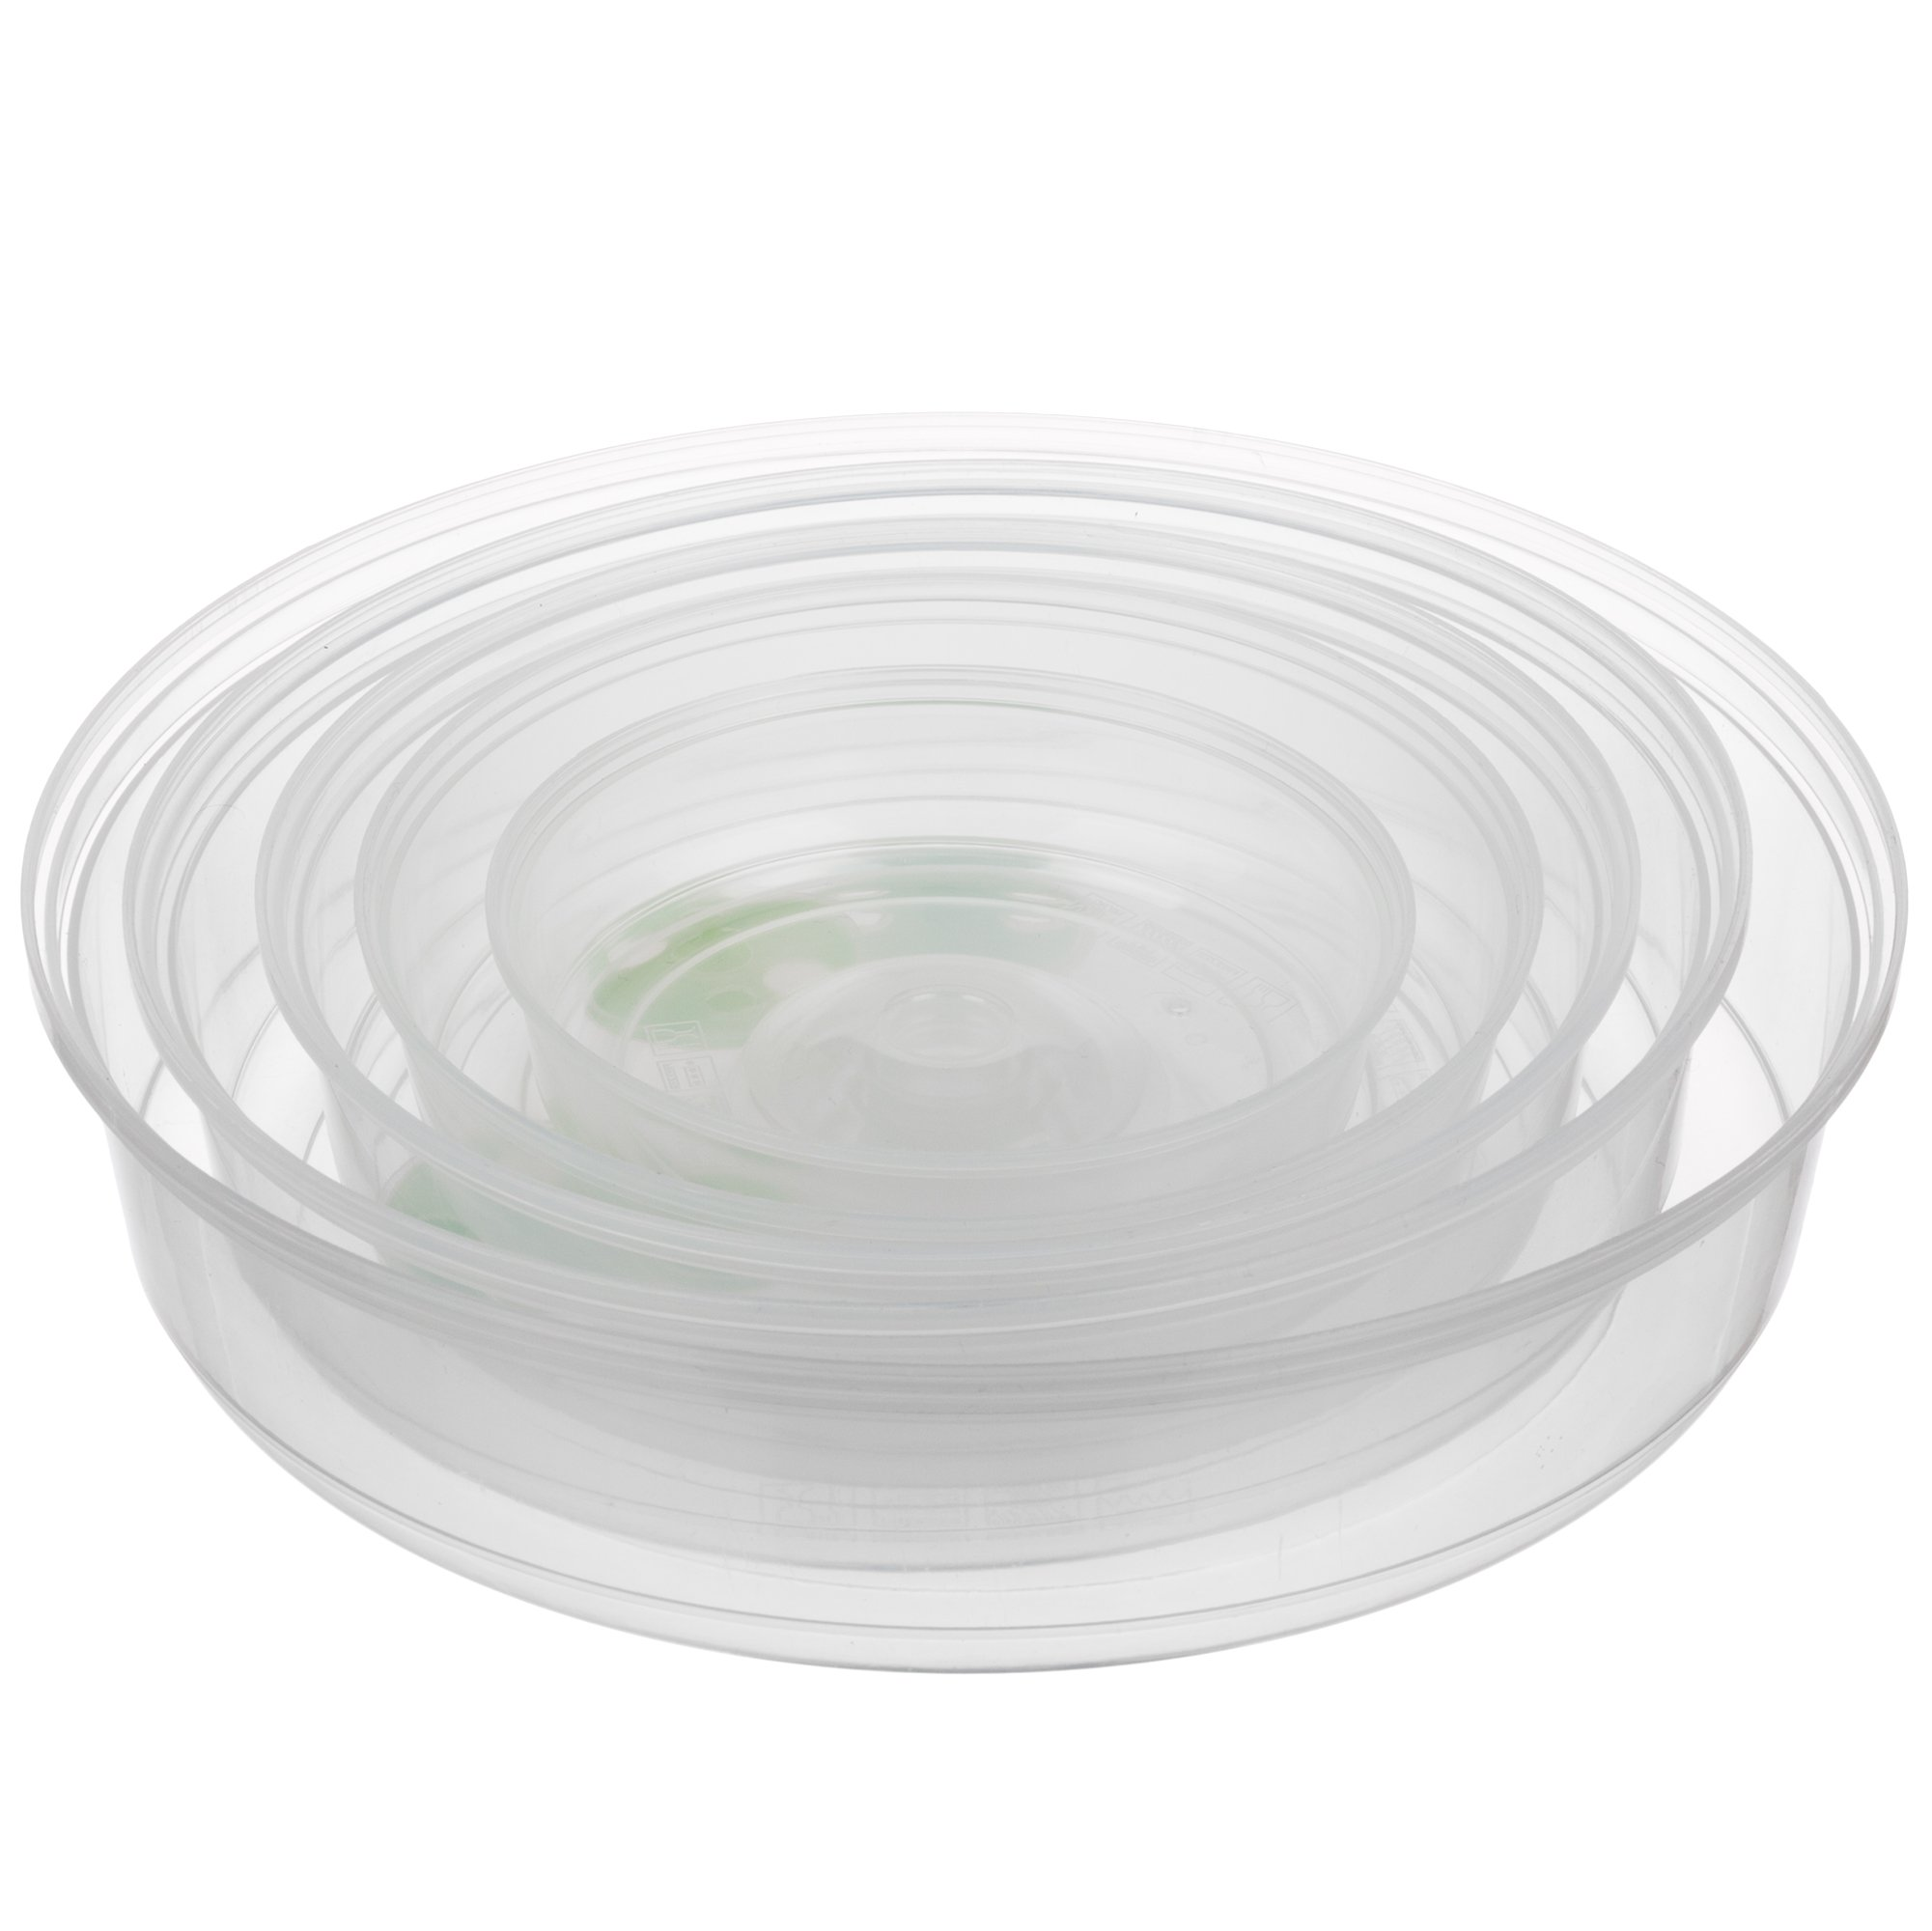 Set of 5 Microwave Plate Covers with Adjustable Steam Vents; Microwave Splatter Covers